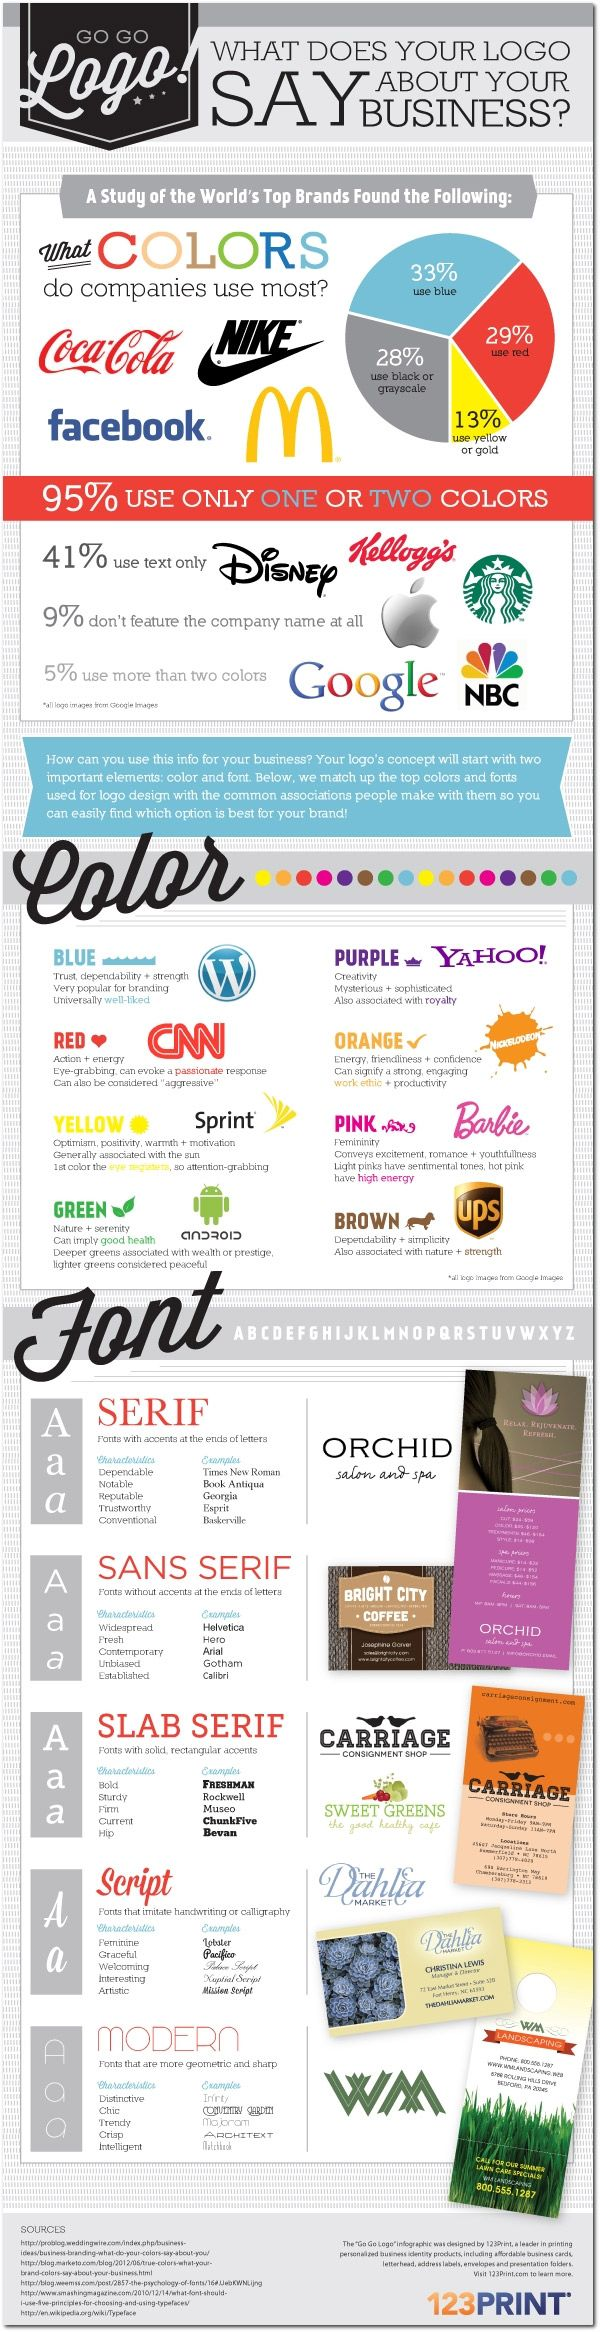 What Your Company Logo Says About Your Brand (Infographic)  Read more: http://www.entrepreneur.com/article/227766#ixzz2bnEn5BsV